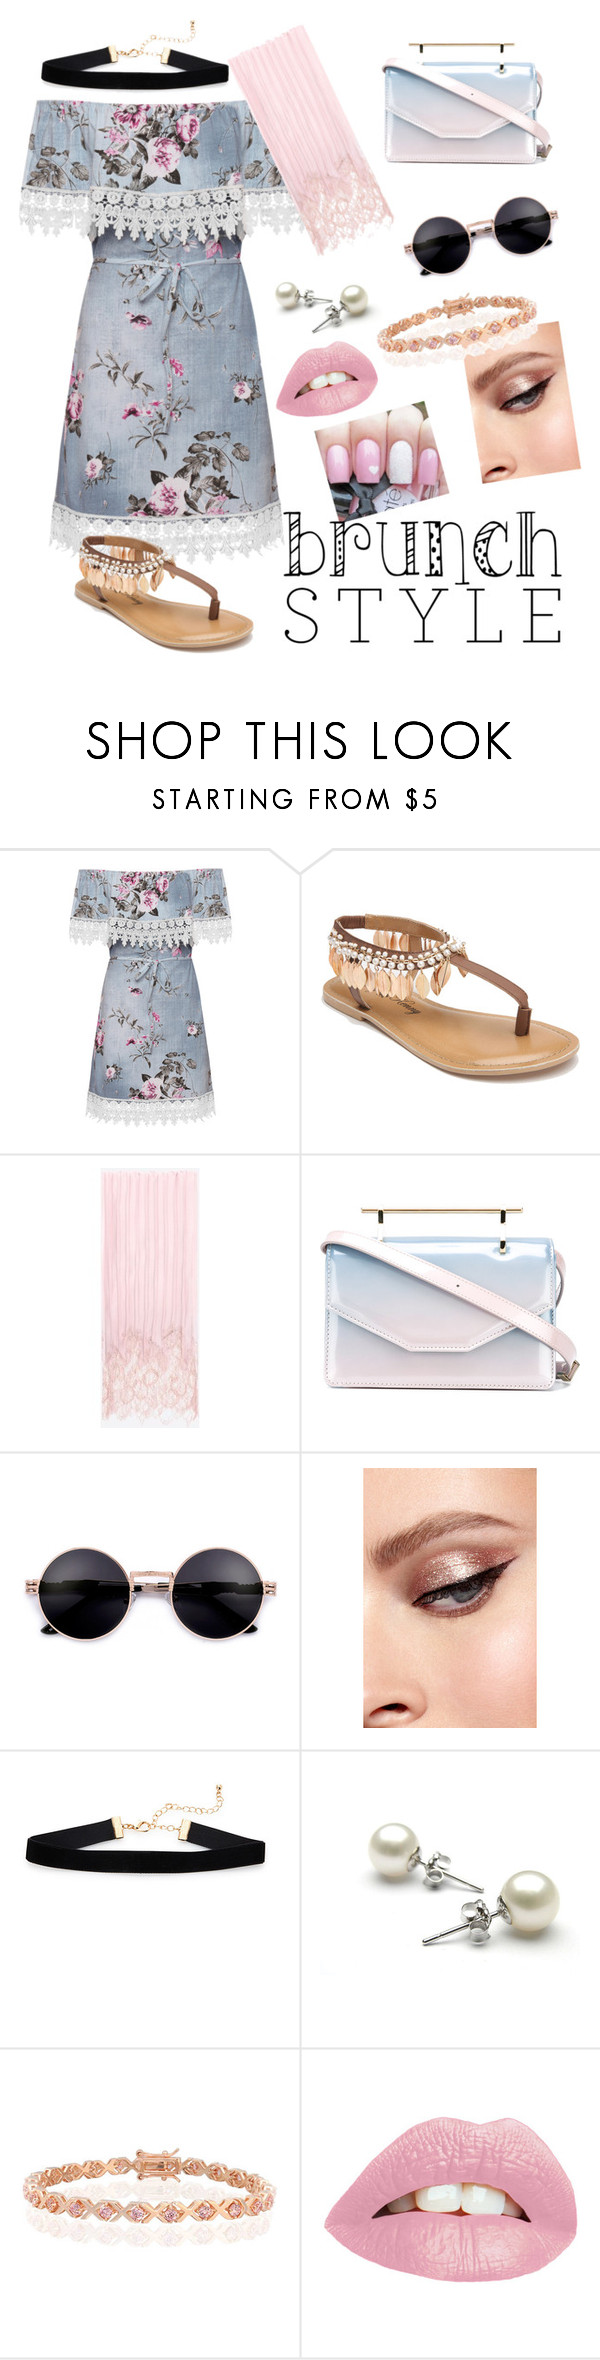 """""""floral brunch with mom"""" by flipingsquid ❤ liked on Polyvore featuring WearAll, Penny Loves Kenny, Valentino, M2Malletier and Bling Jewelry"""